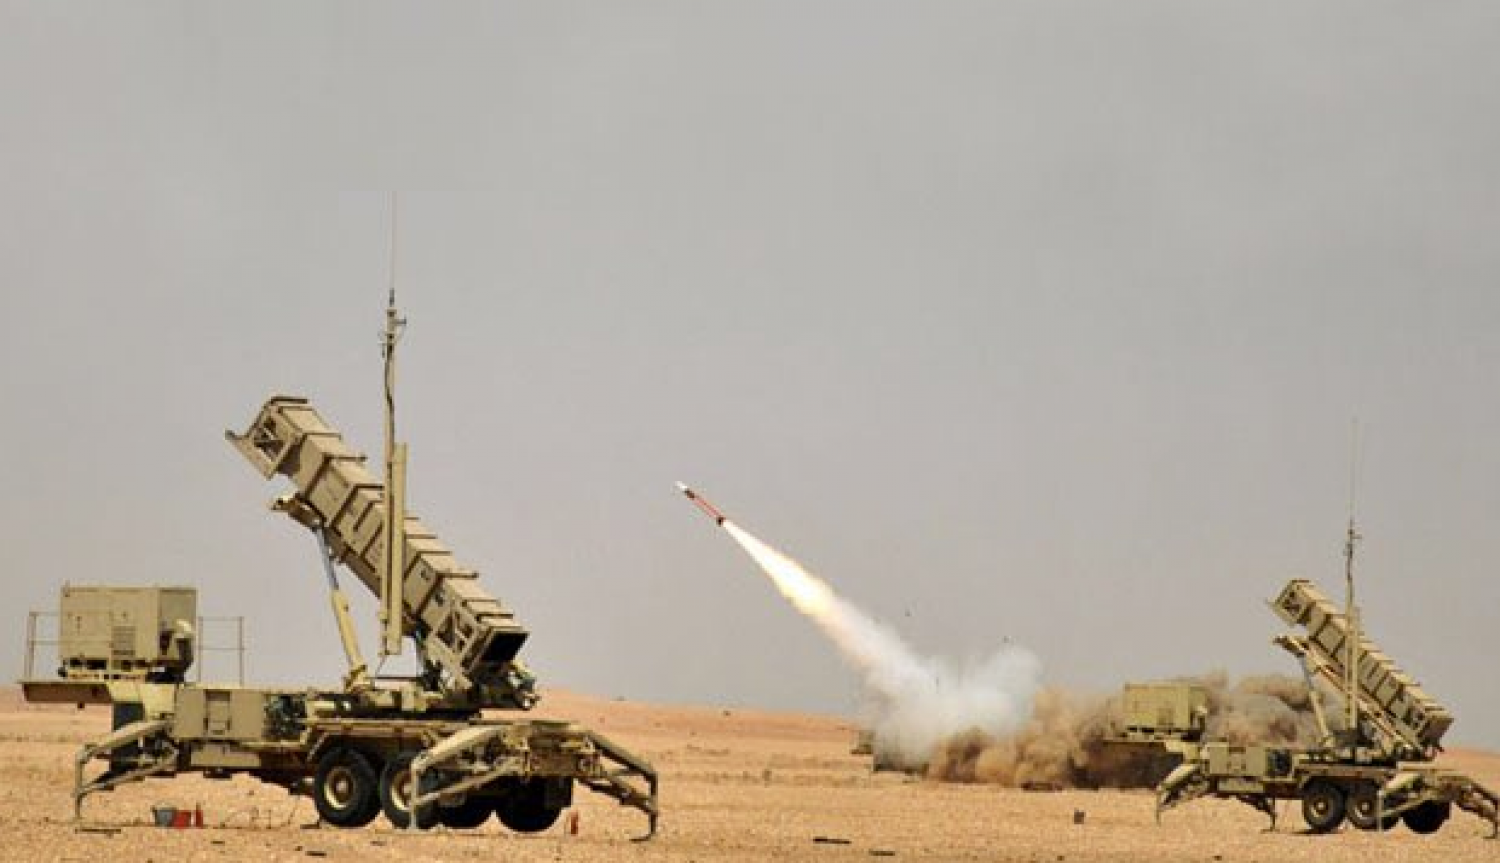 Houthis Reportedly Destroyed Saudi Arabia's Patriot Air Defense System In Western Yemen